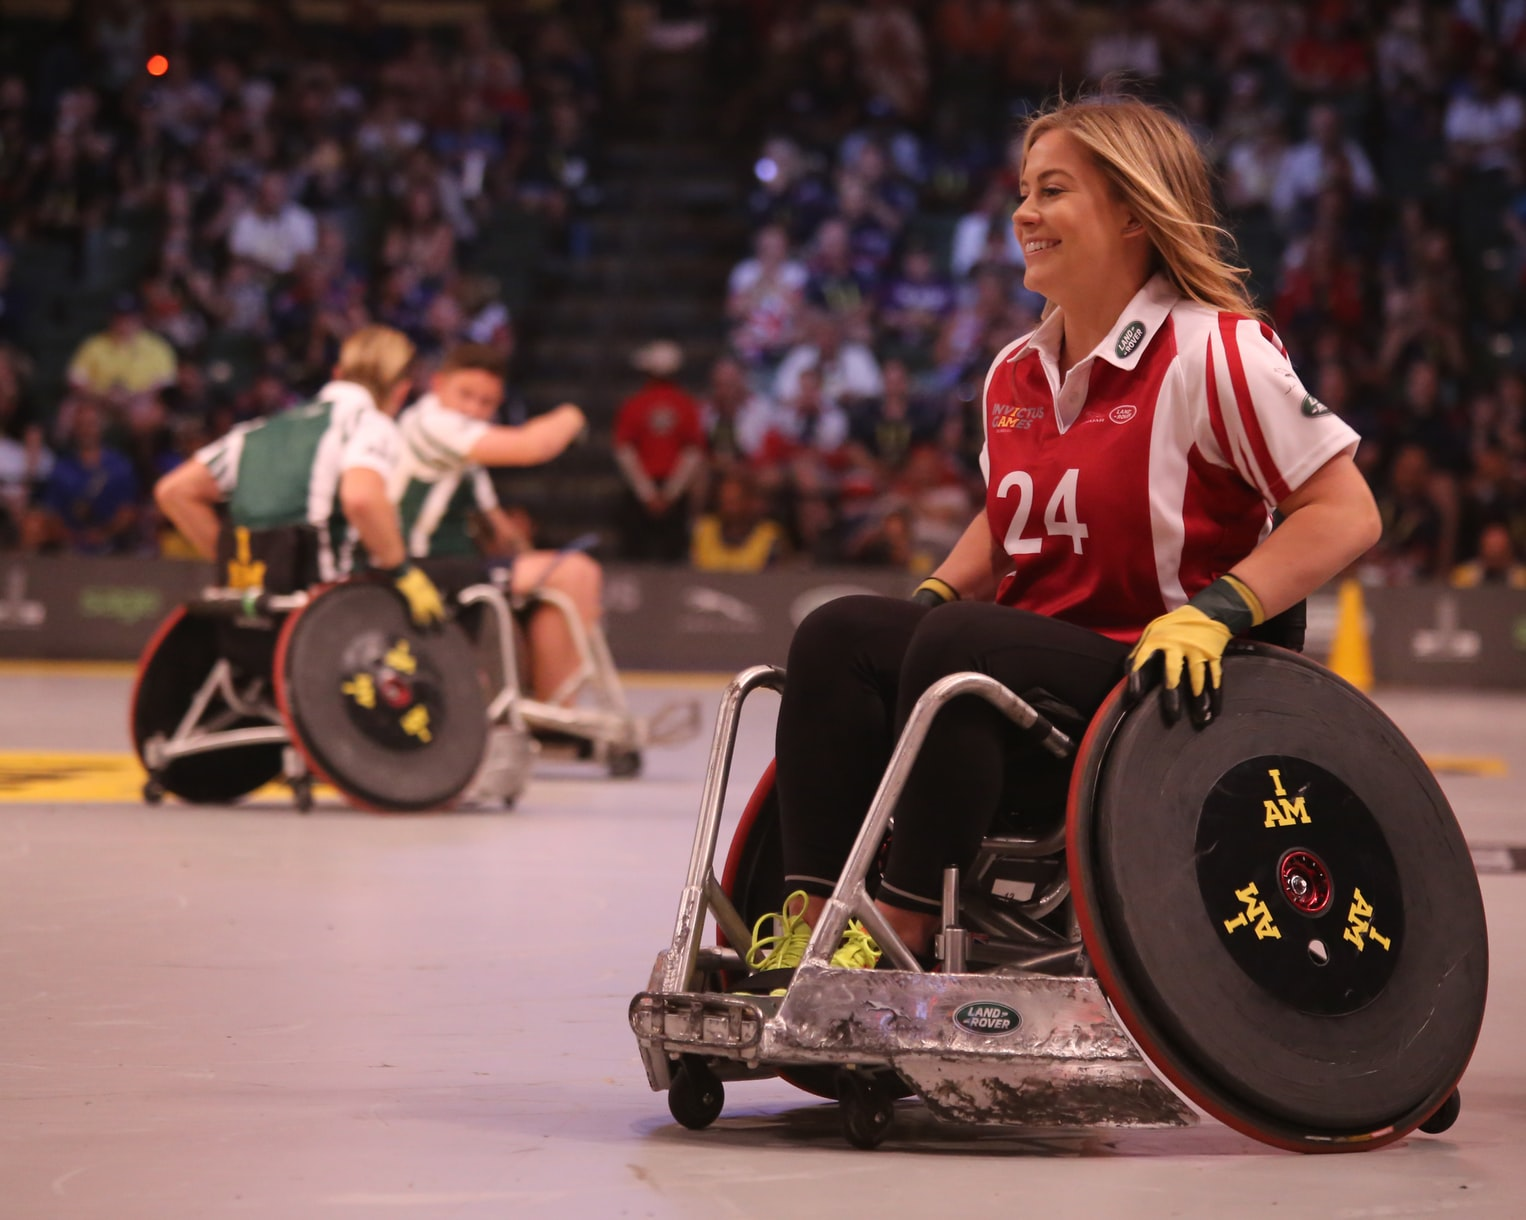 Image shows a woman in a wheelchair wearing a sporting top